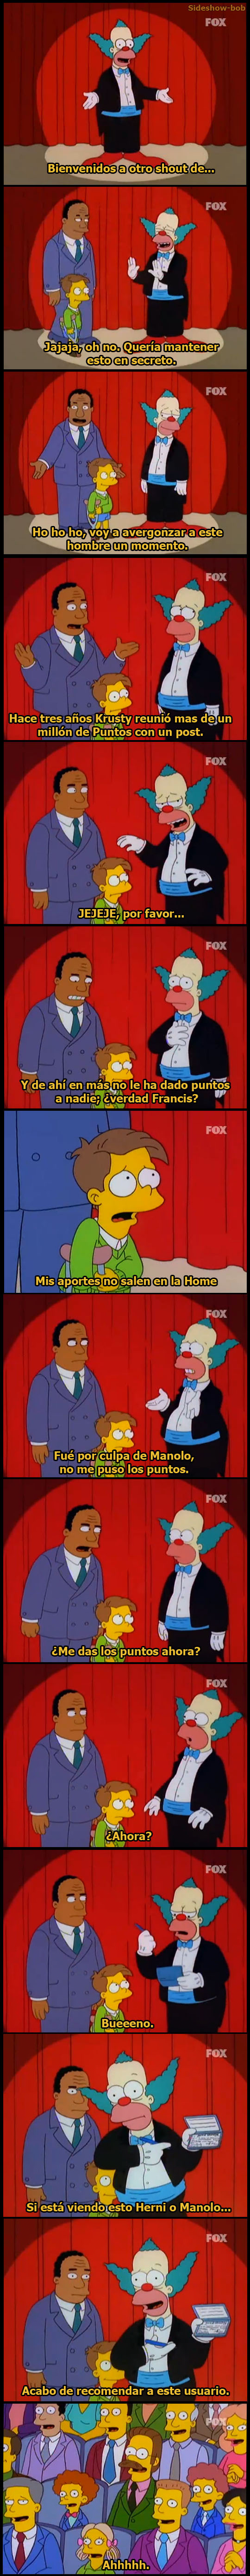 LosSimpsons